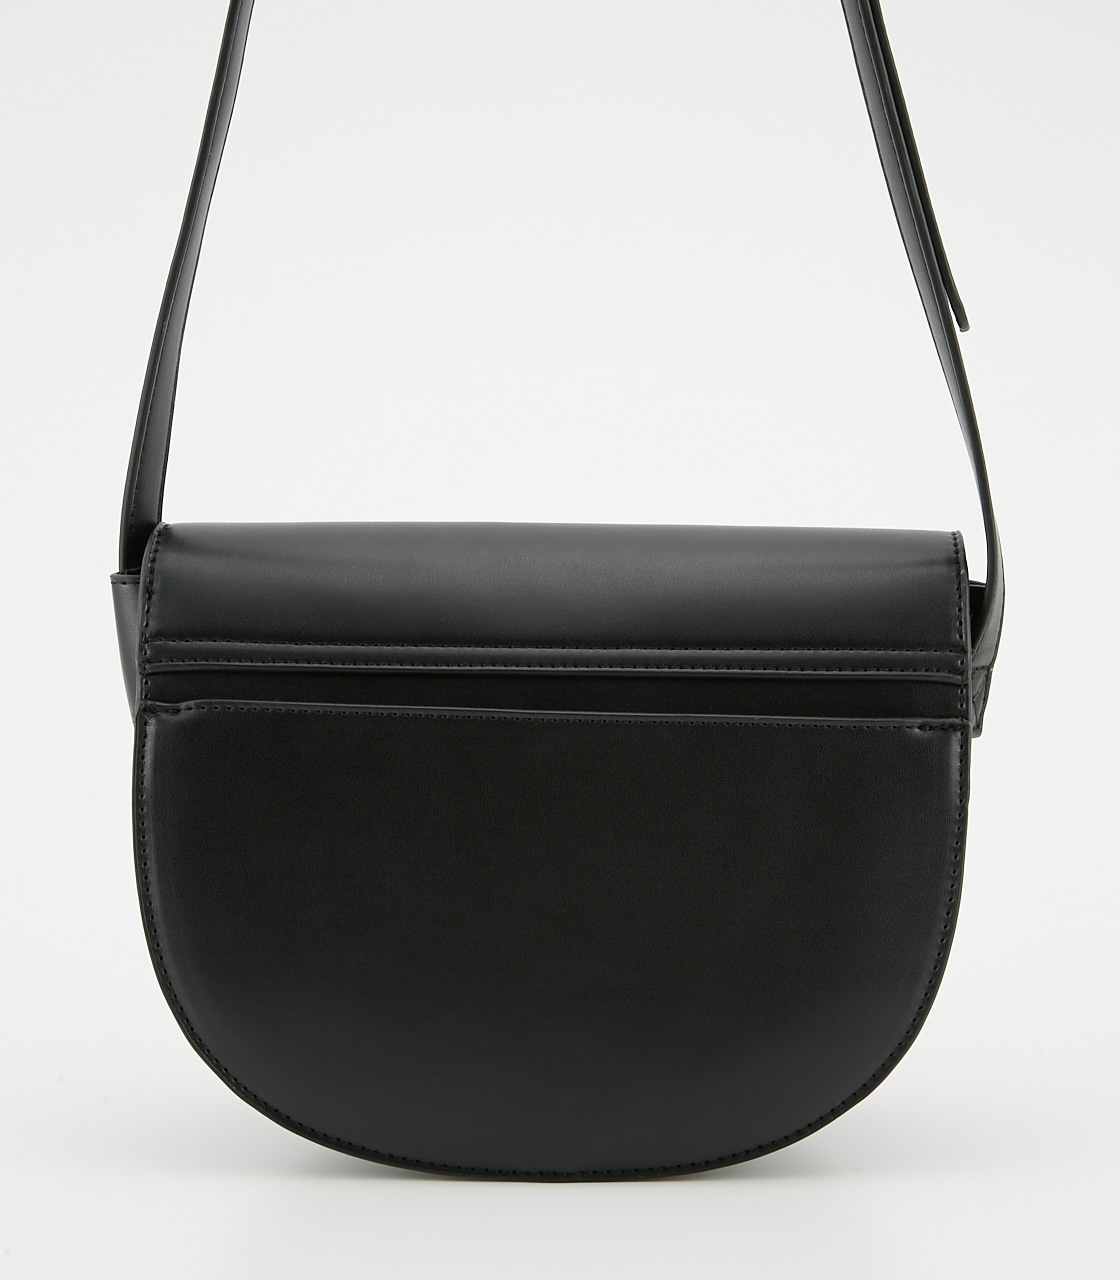 【AZUL BY MOUSSY】サークルメタルショルダーバッグ 詳細画像 BLK 5